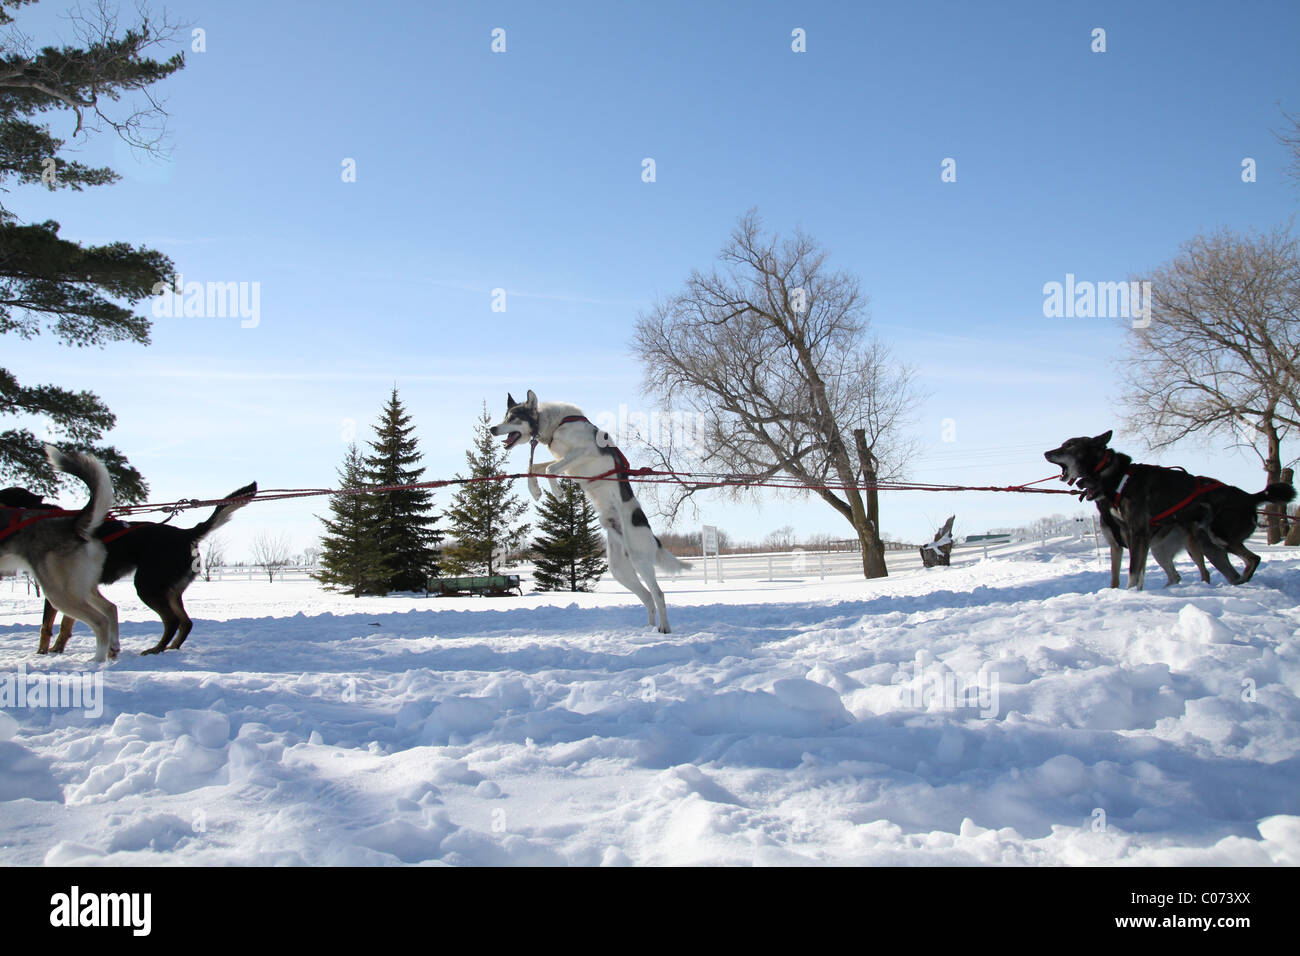 Sled dogs jumping and pulling while waiting to start working. - Stock Image